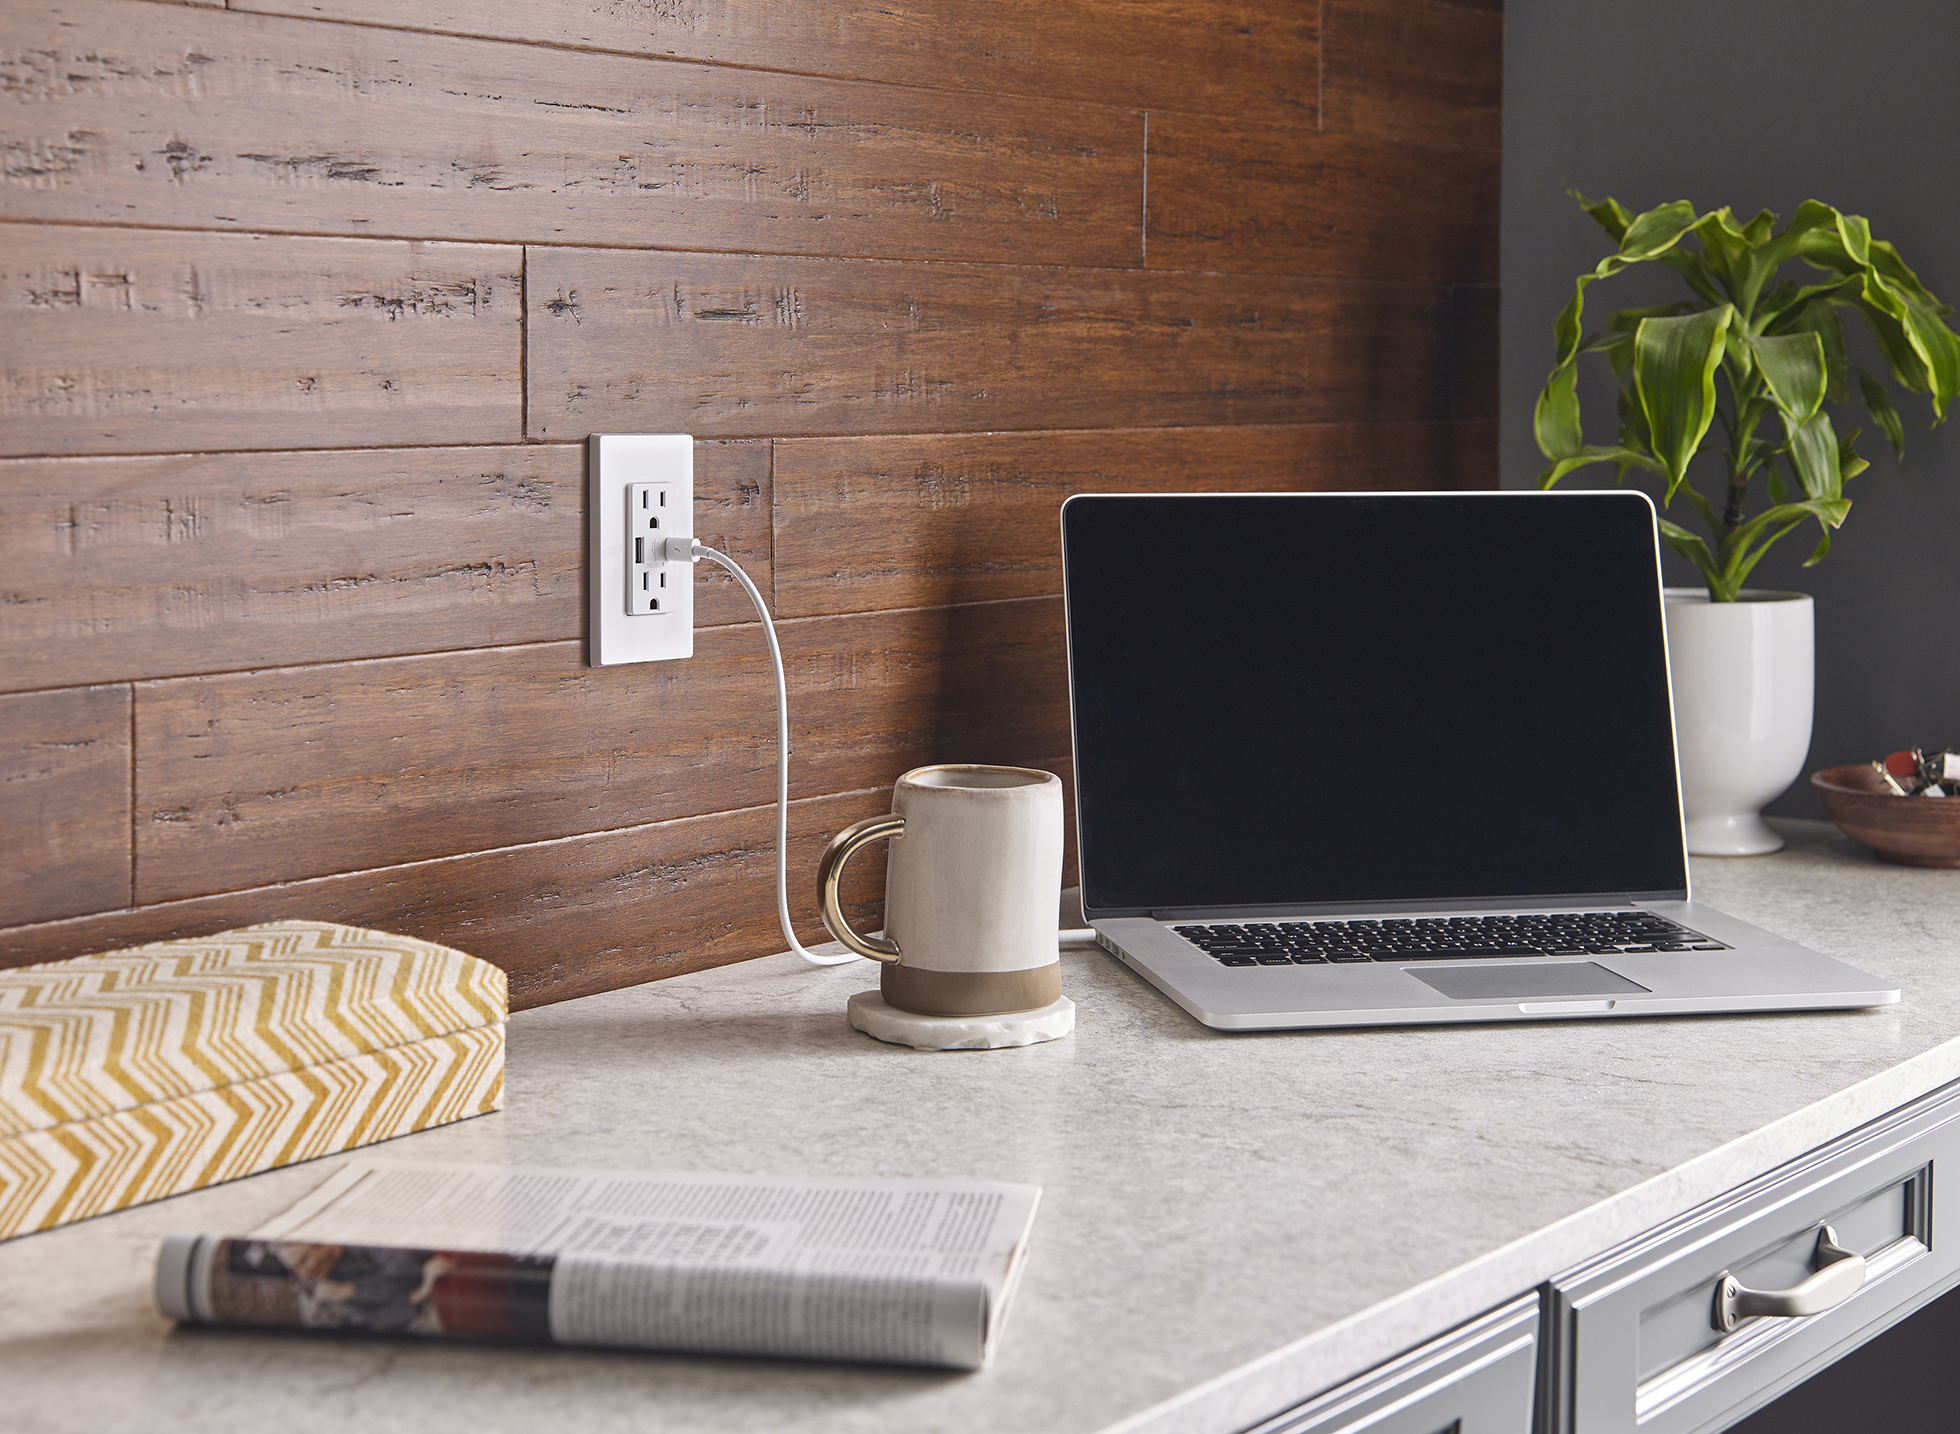 Quick charge USB port beside Mac laptop and mug on marble